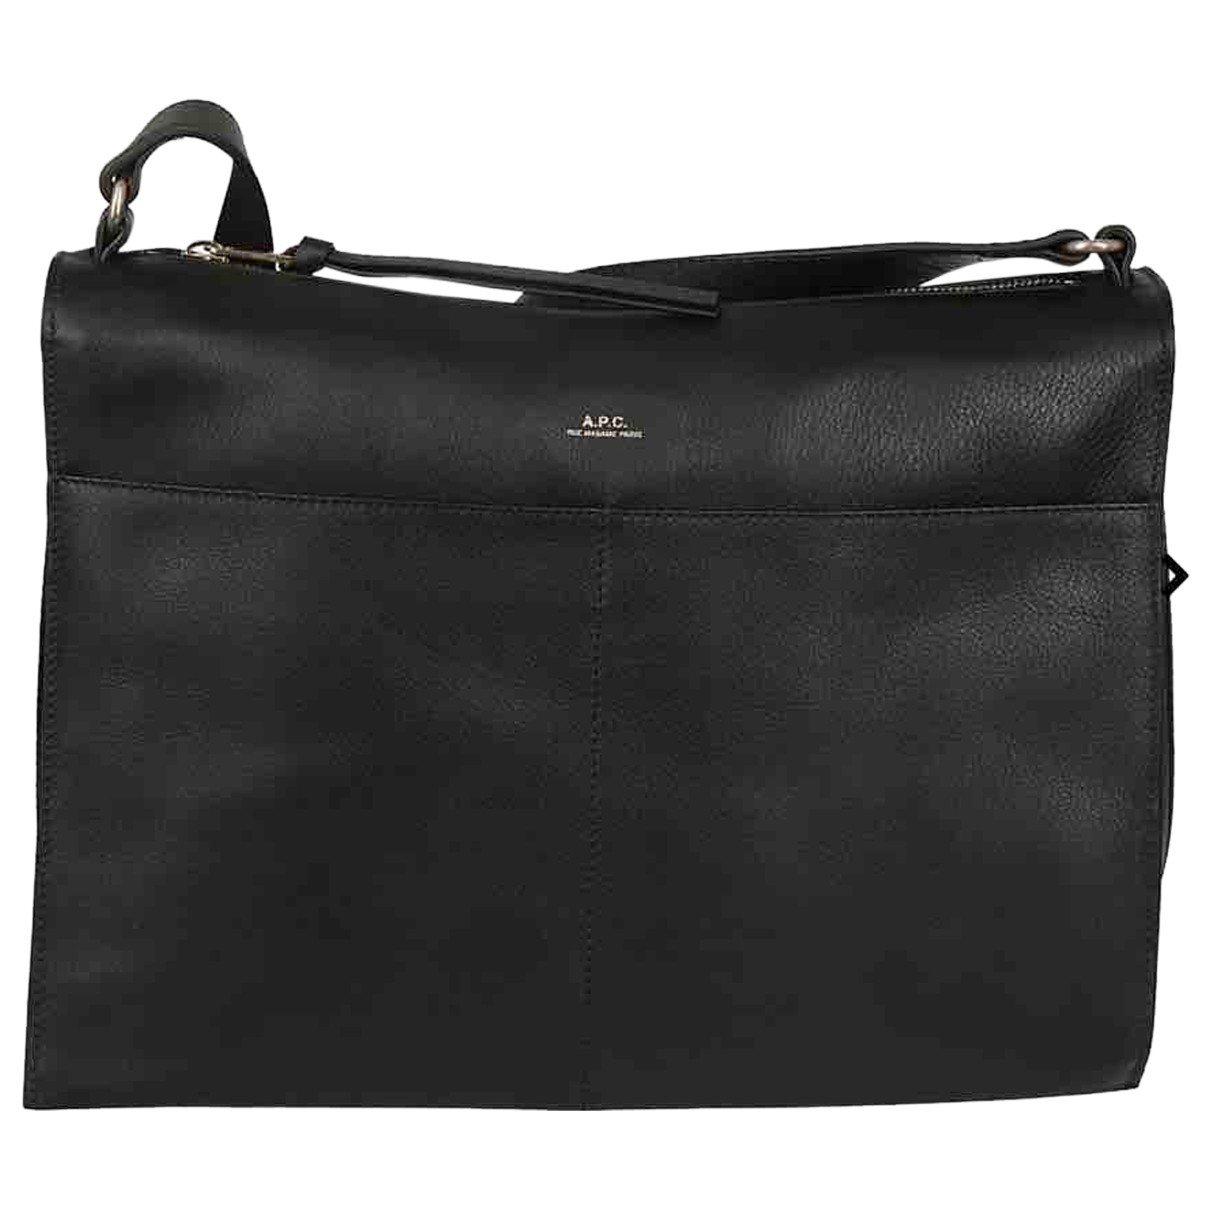 Apc N Black Leather handbag for Women N